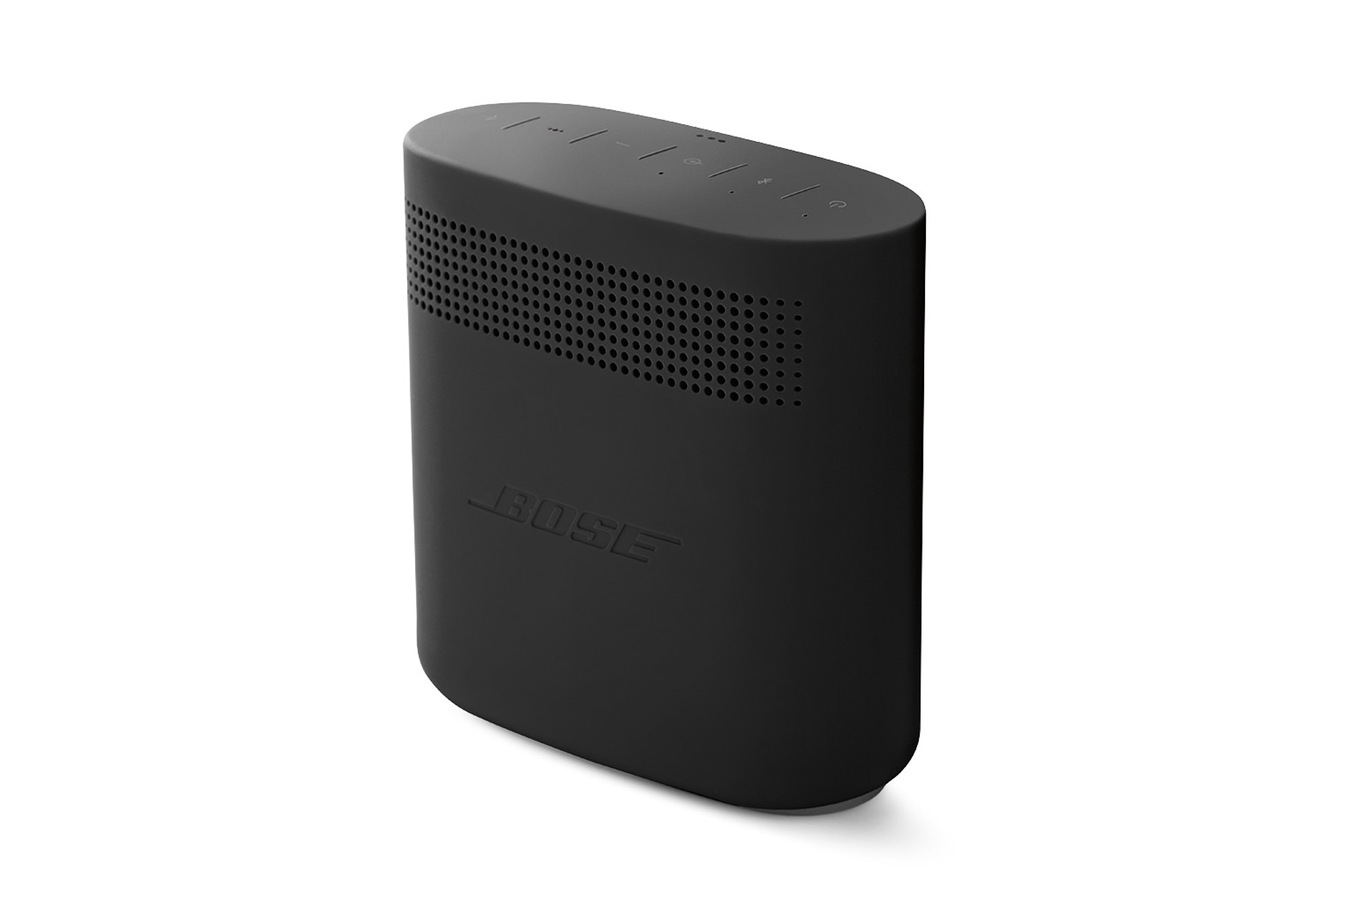 enceinte bluetooth sans fil bose soundlink color ii black soundlink color 2 black 4239377. Black Bedroom Furniture Sets. Home Design Ideas